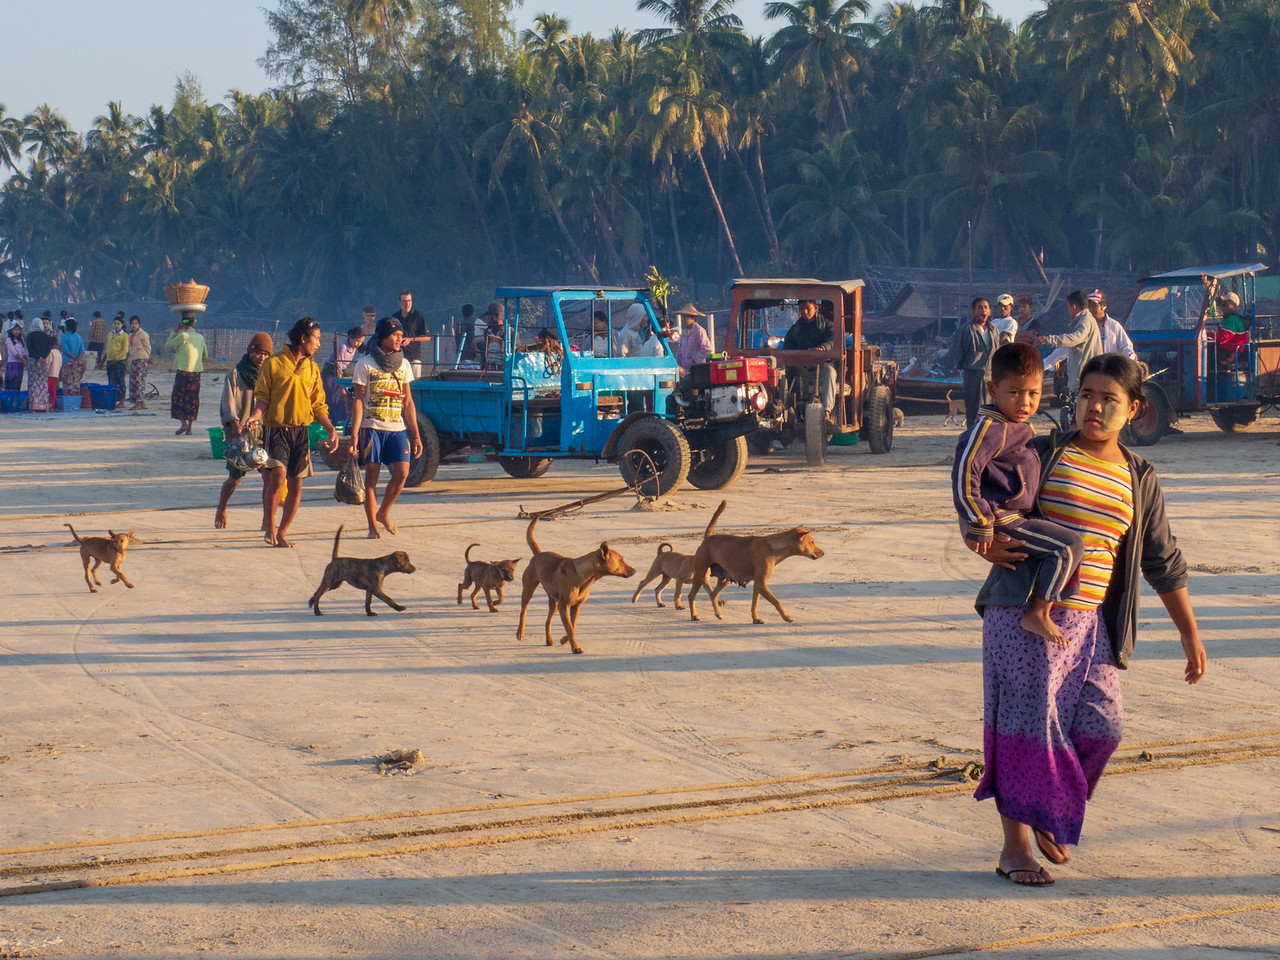 Dogs in the Myanmar FIshing Village Are Skinny, but Optimistic